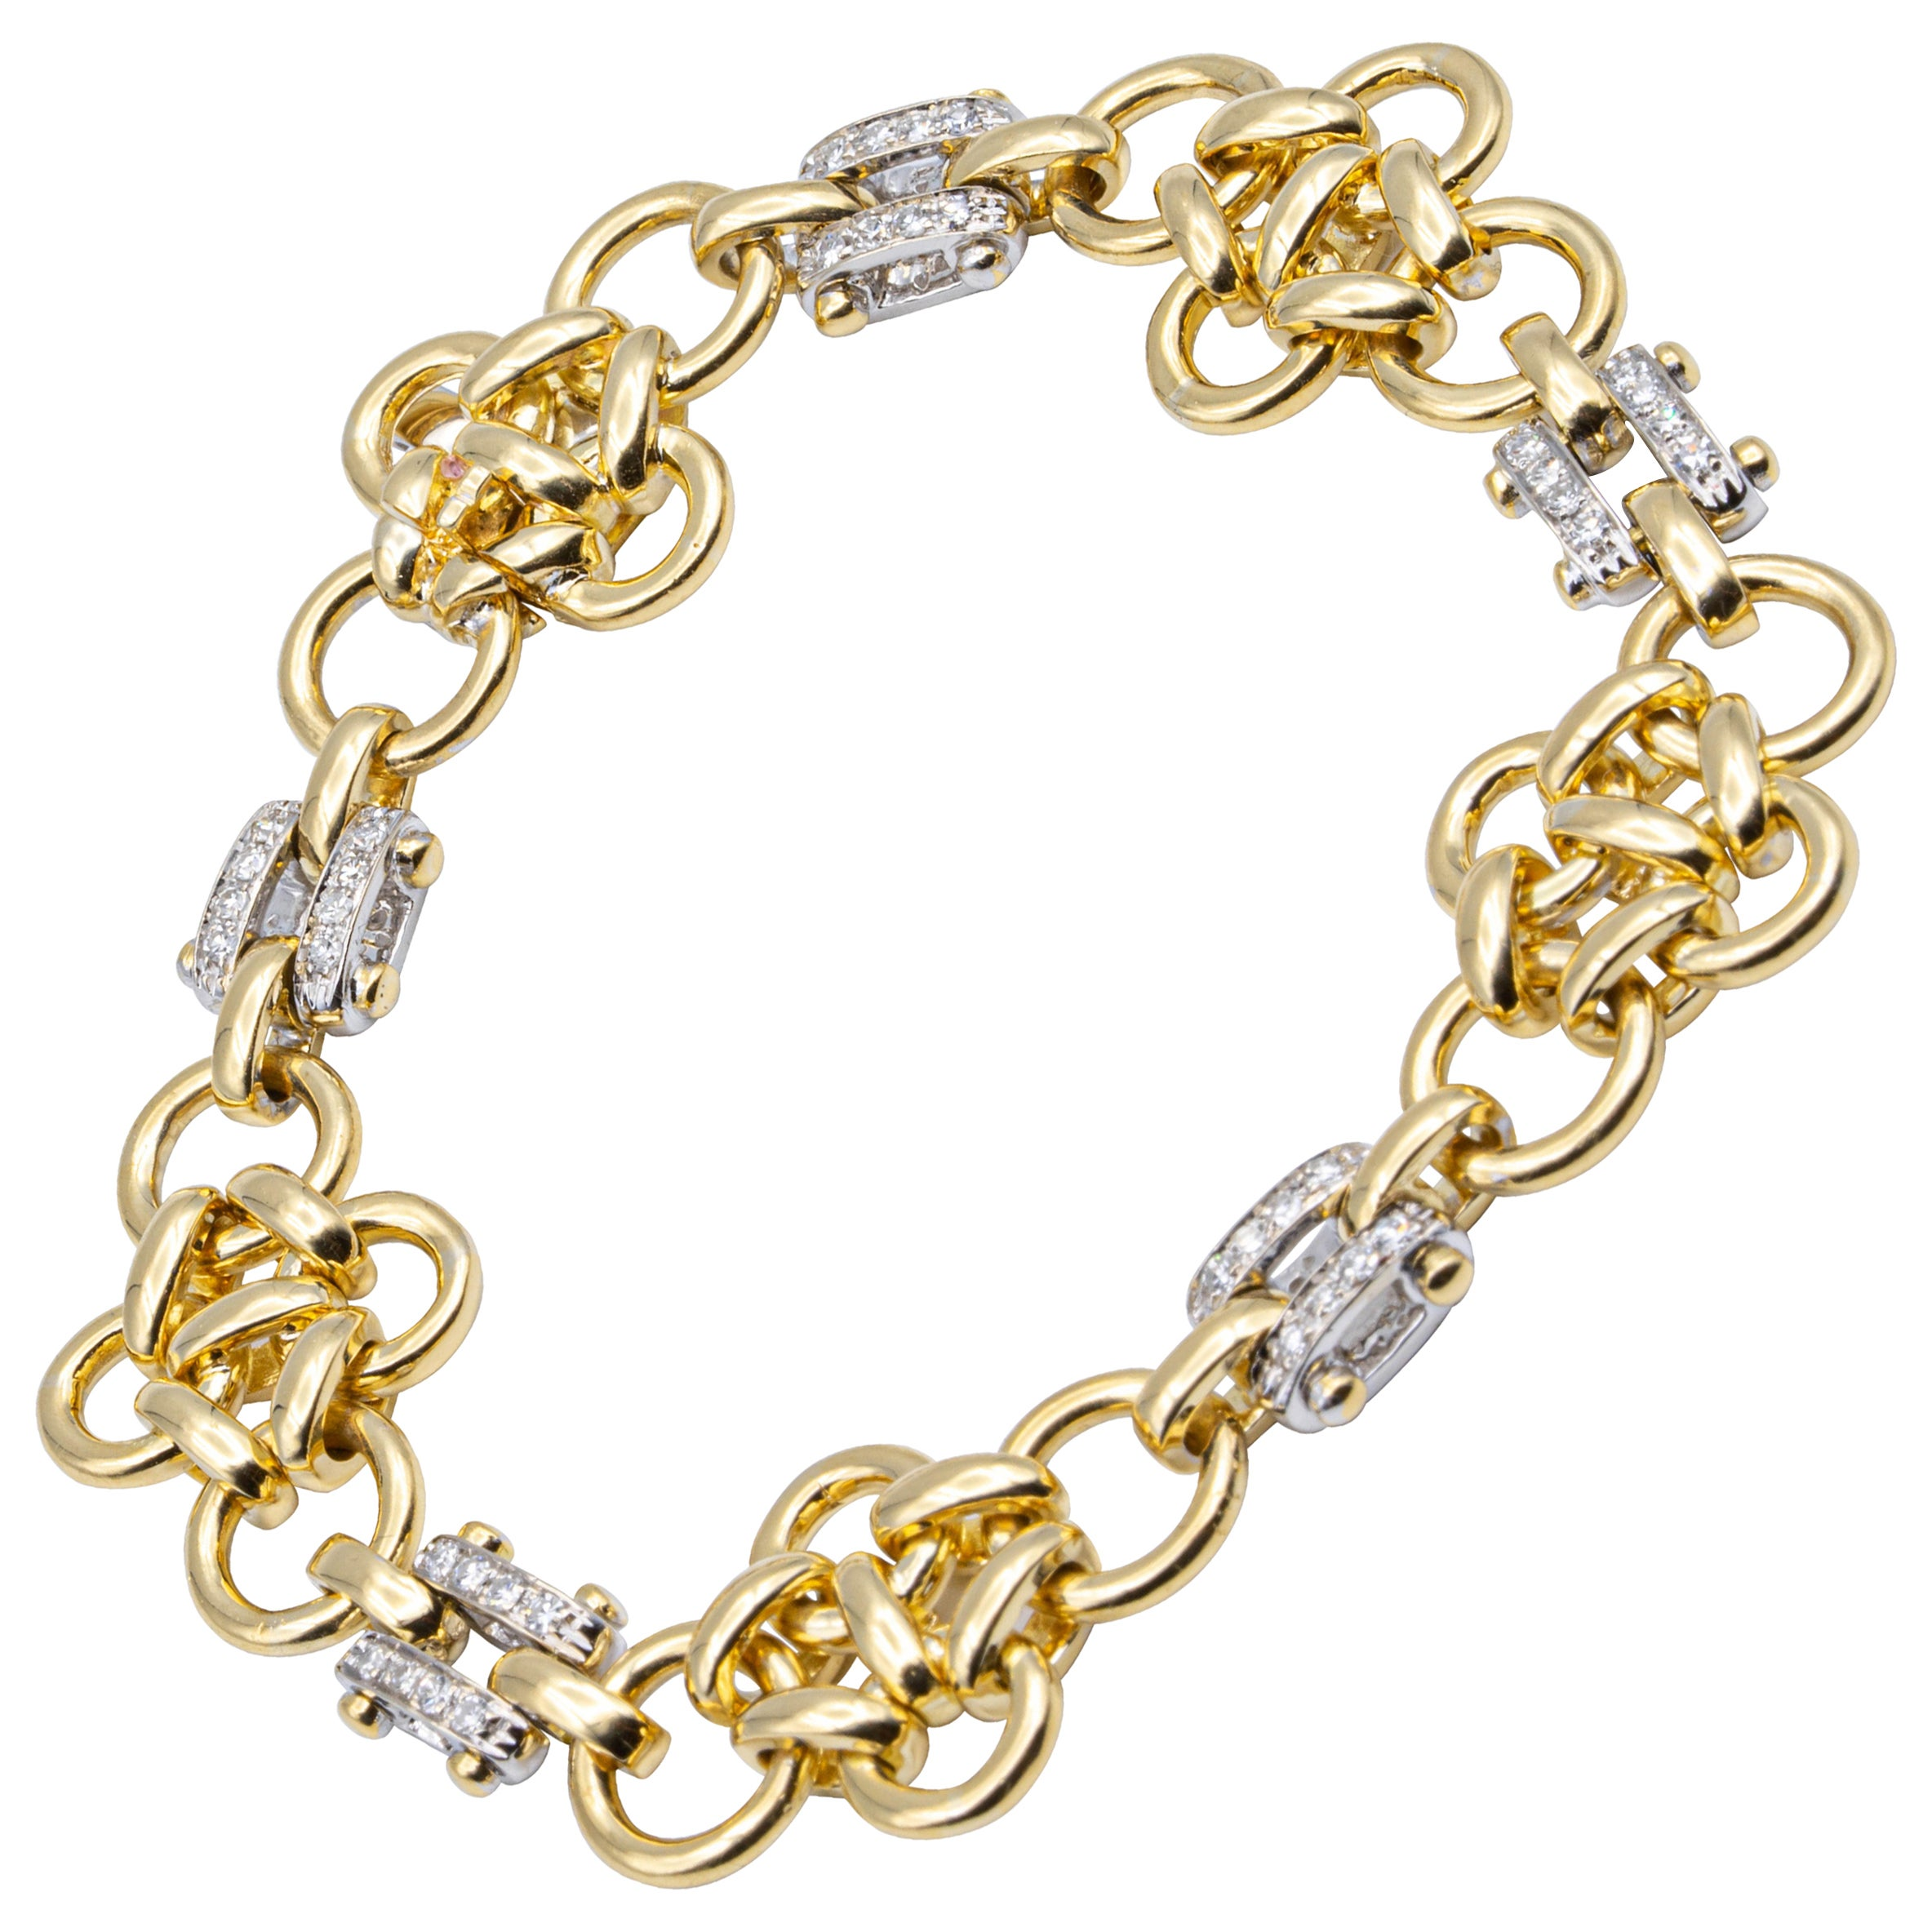 Tiffany & Co. Link 18 Karat Gold and Diamond Bracelet